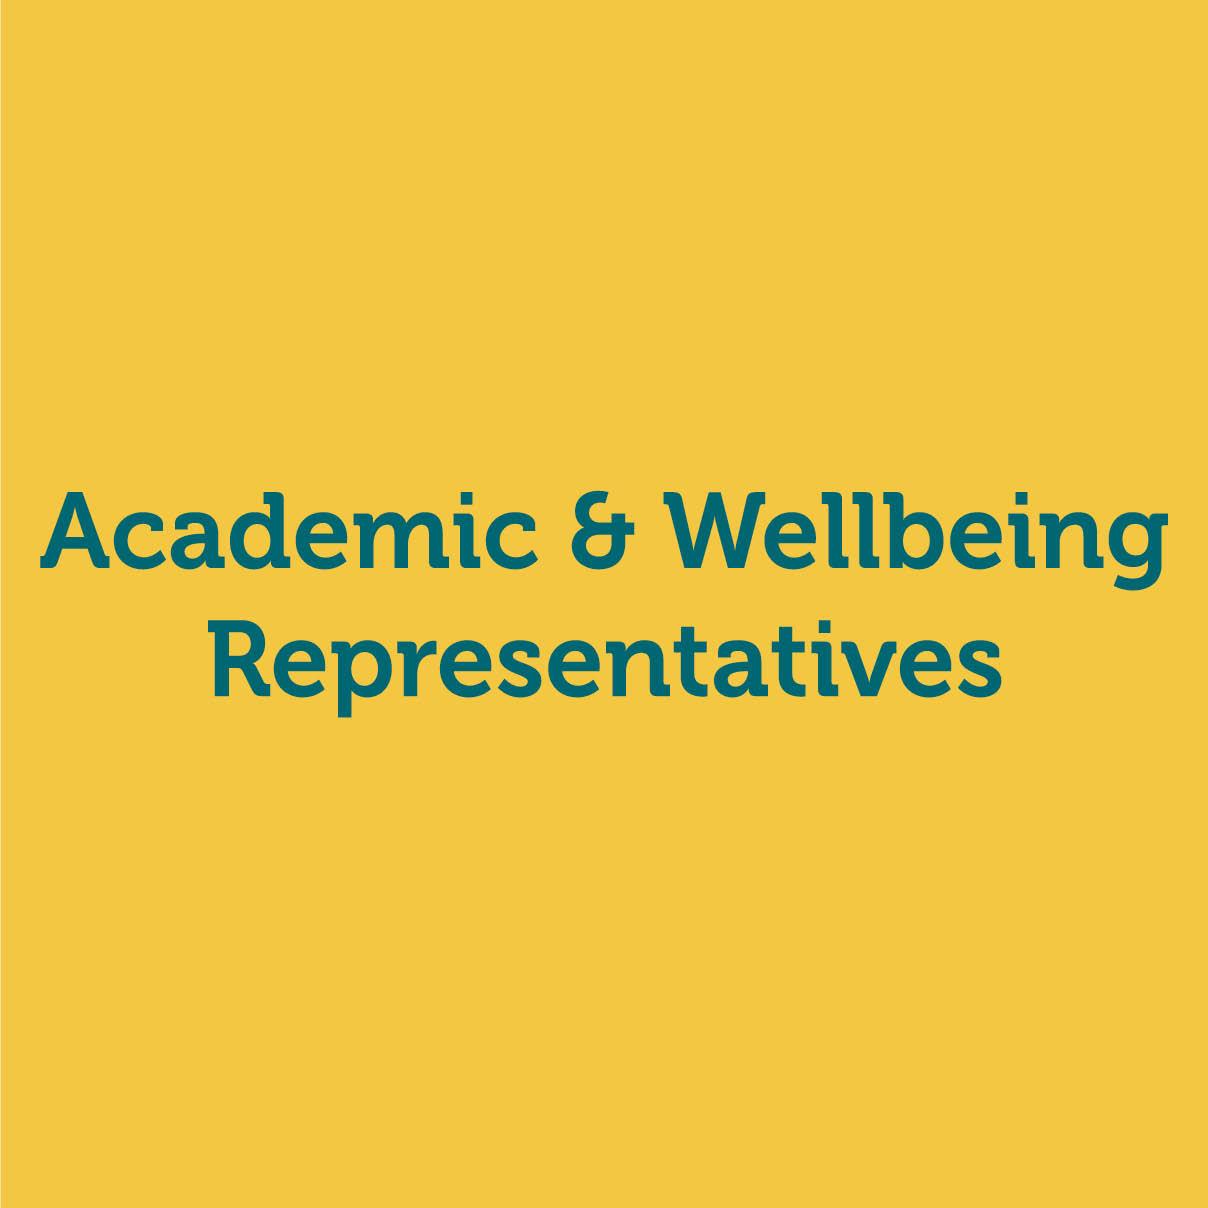 Academic & Wellbeing Representatives